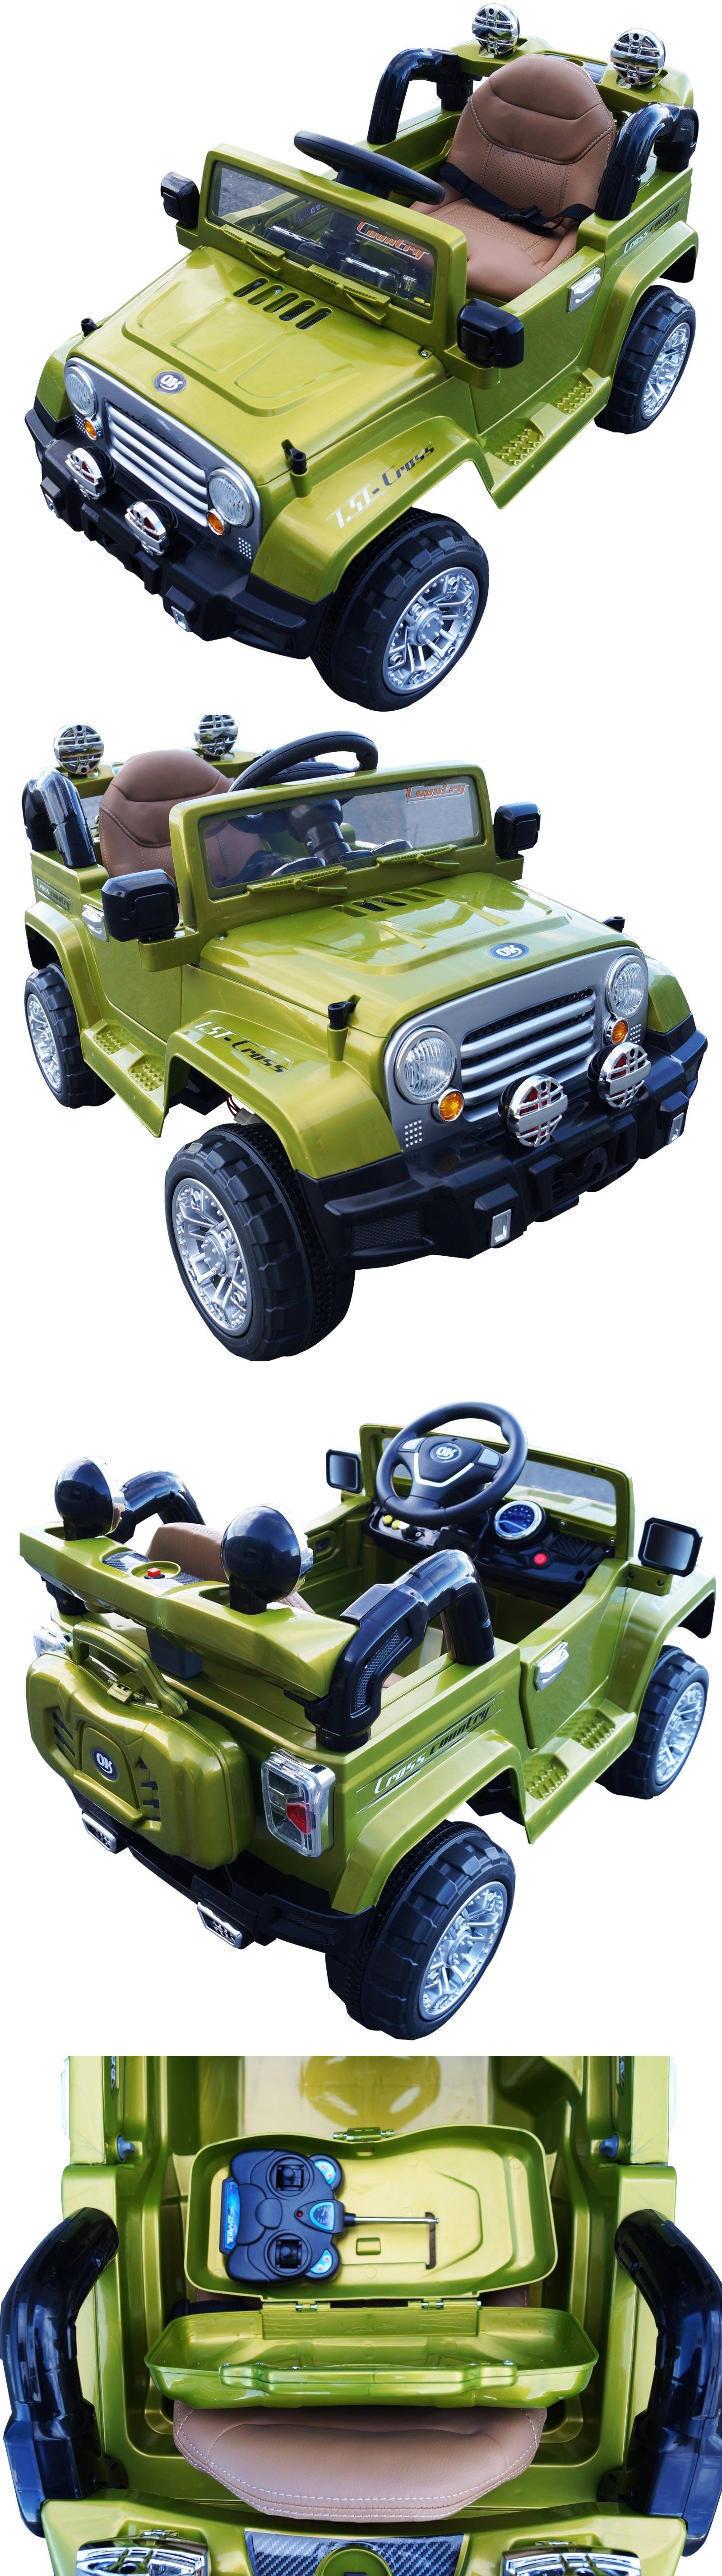 Jeep toys for kids  Toy Vehicles   Jeep Volt Battery Powered Electric Ride